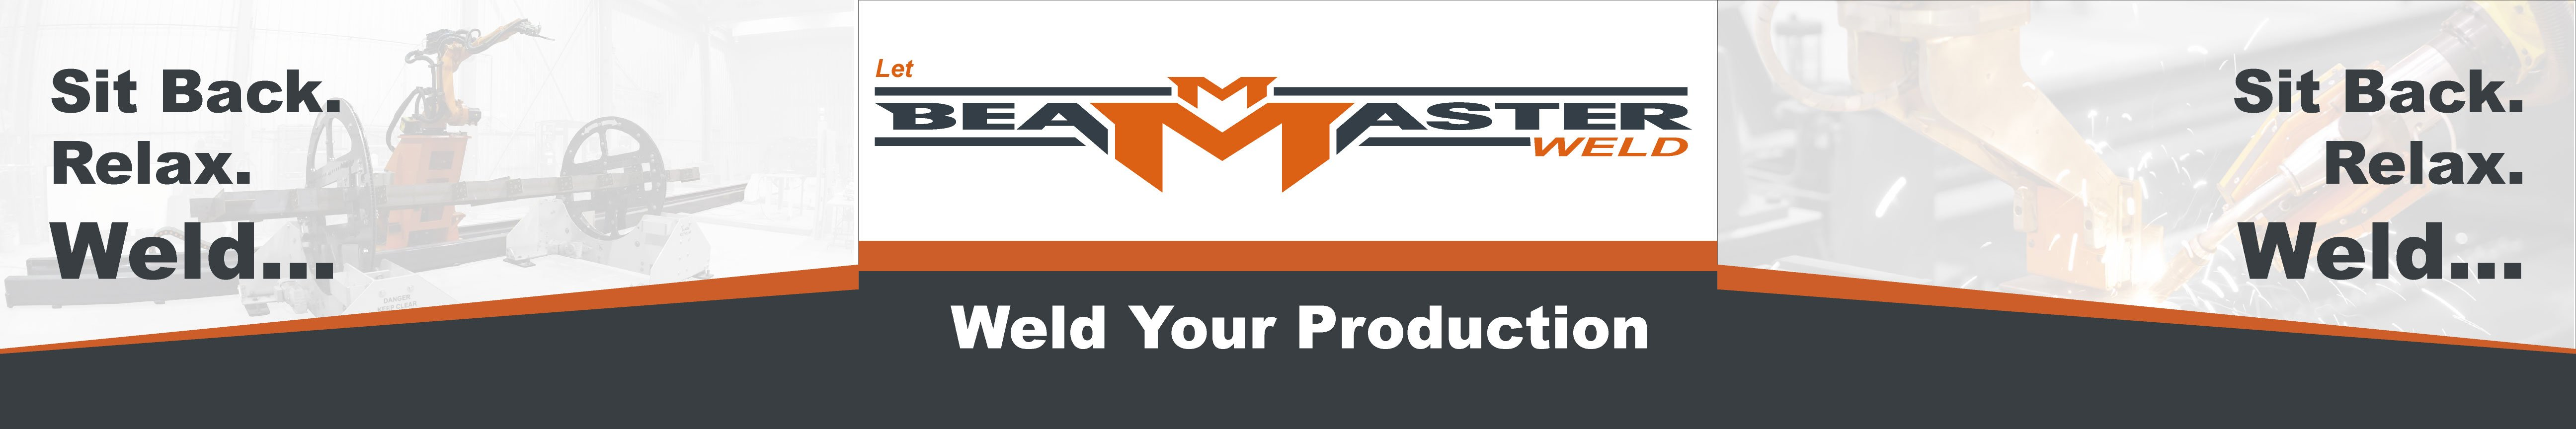 Relax. Sit BACK. Let BeamMaster Weld